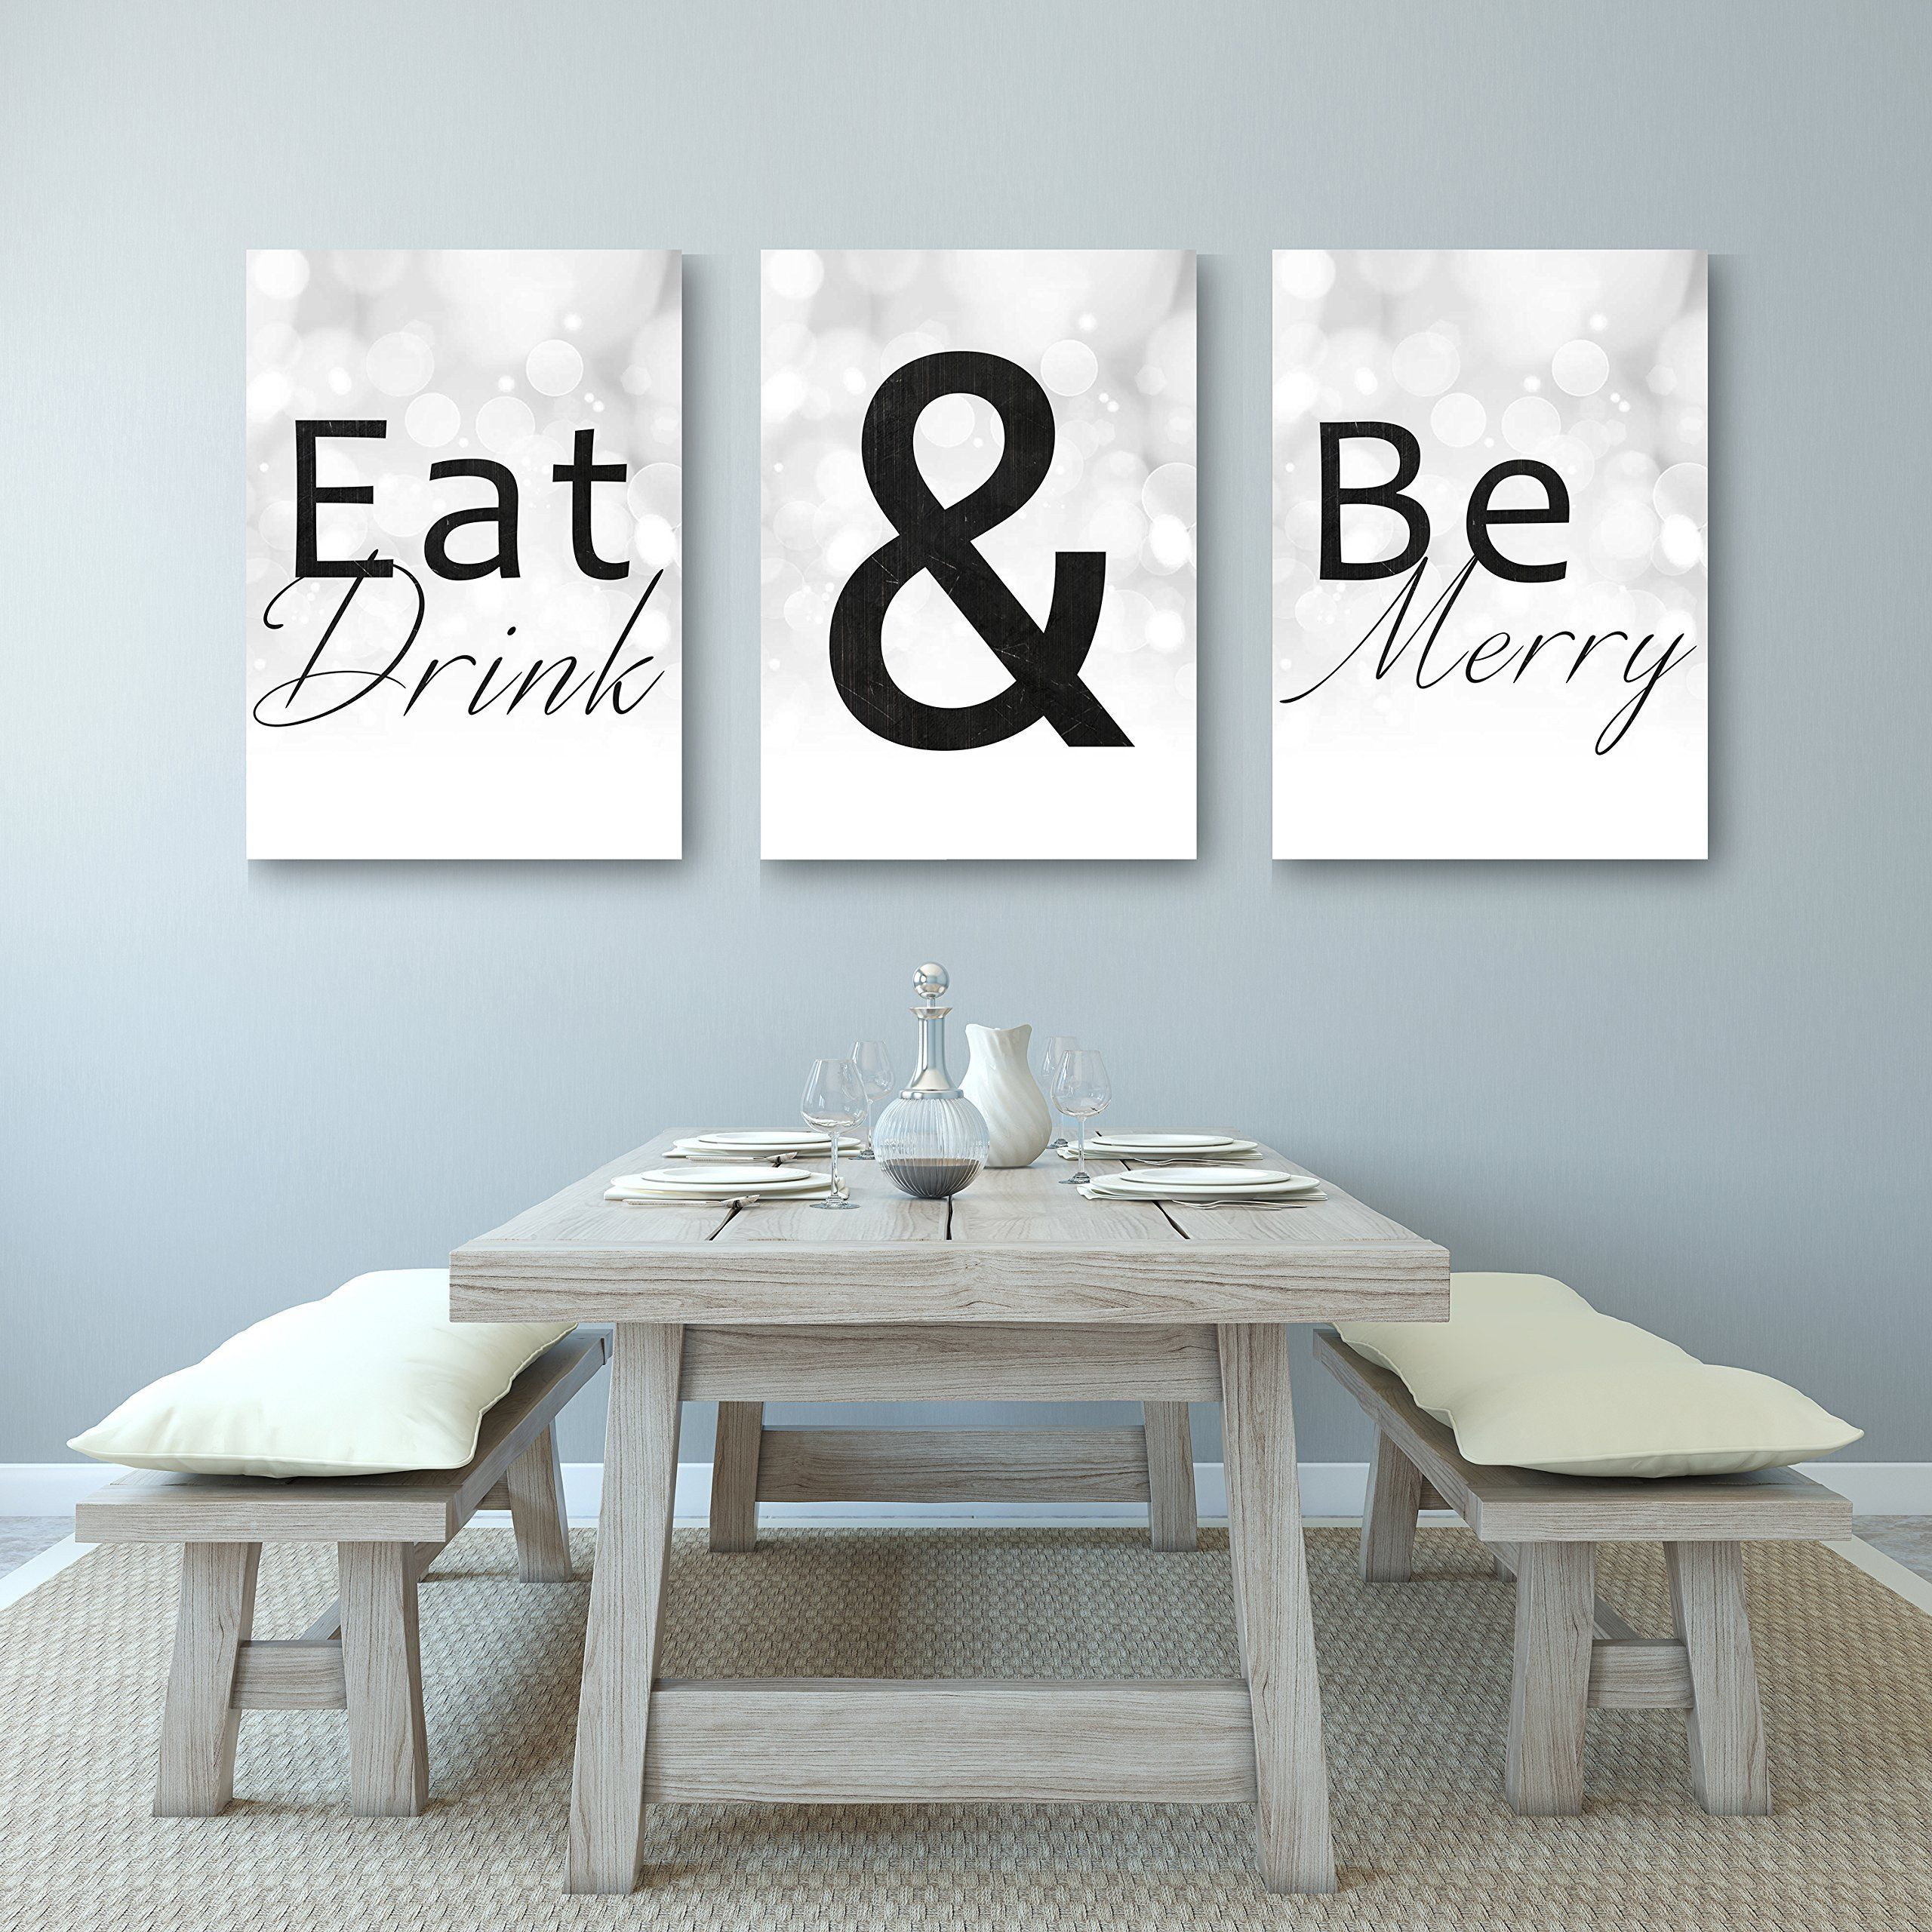 Eat drink and be merry beautiful kitchen or dining decor canvases